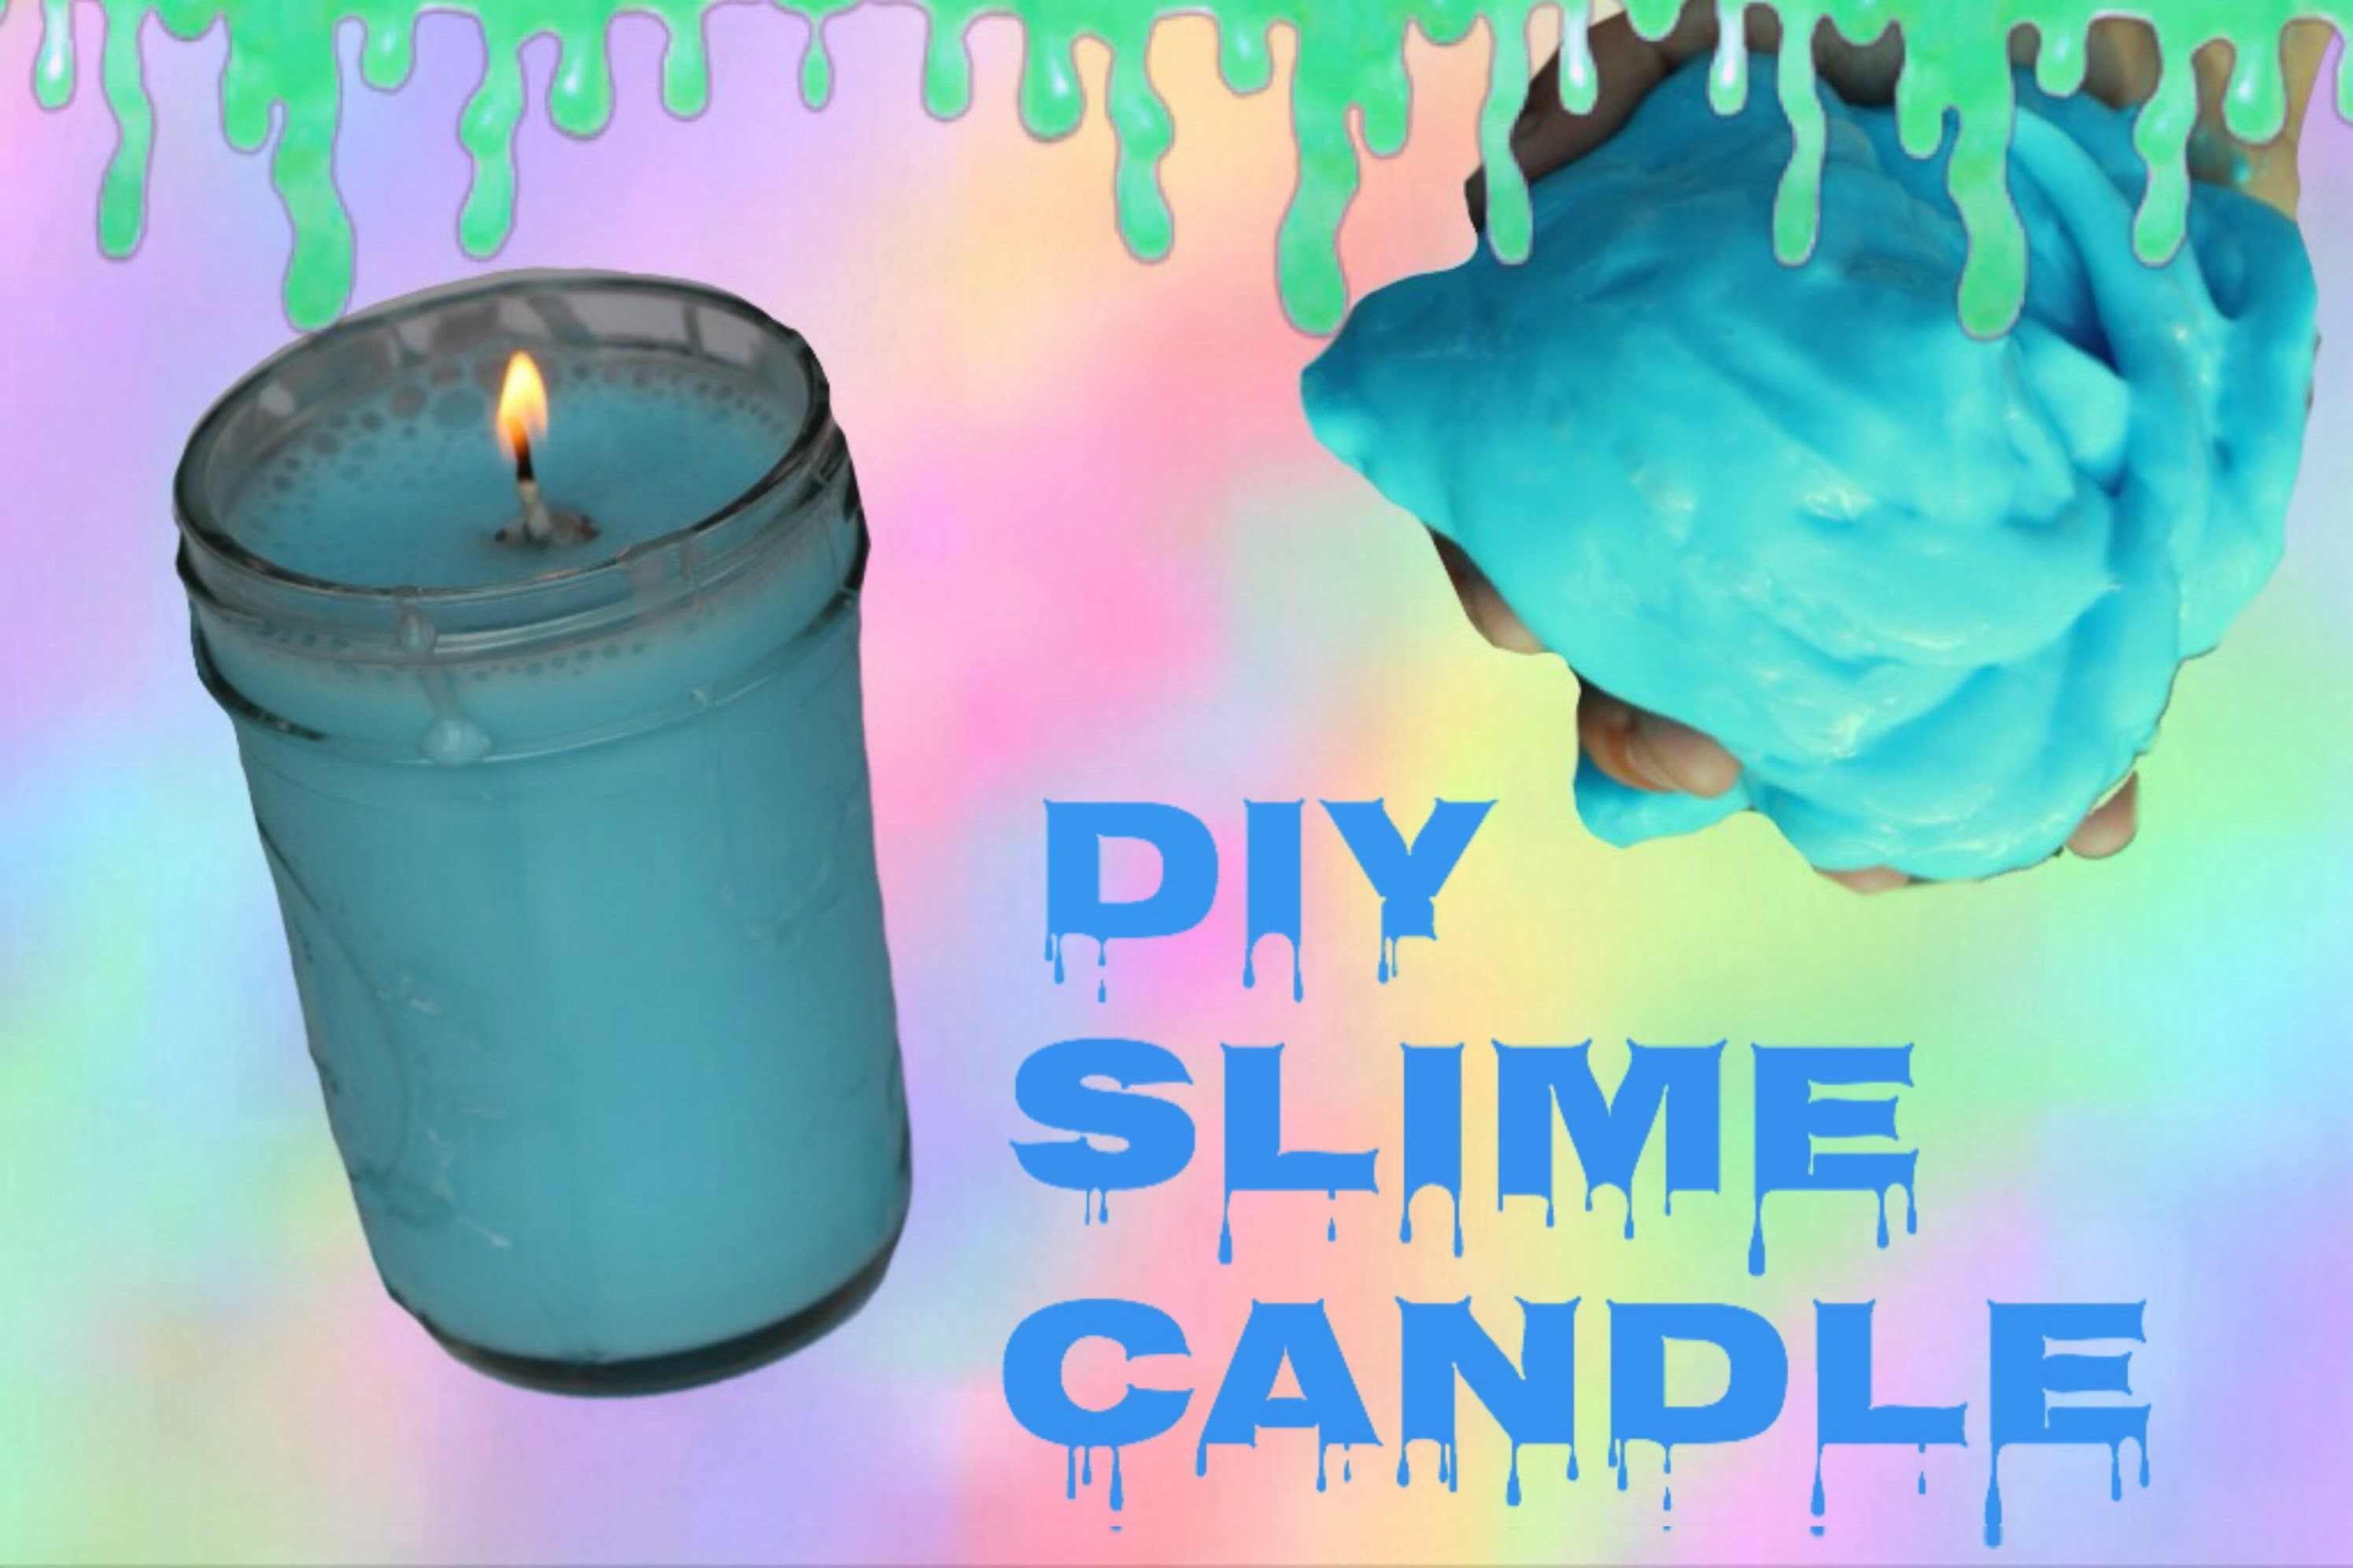 DIY SLIME CANDLE! How to make a slime candle that lights!